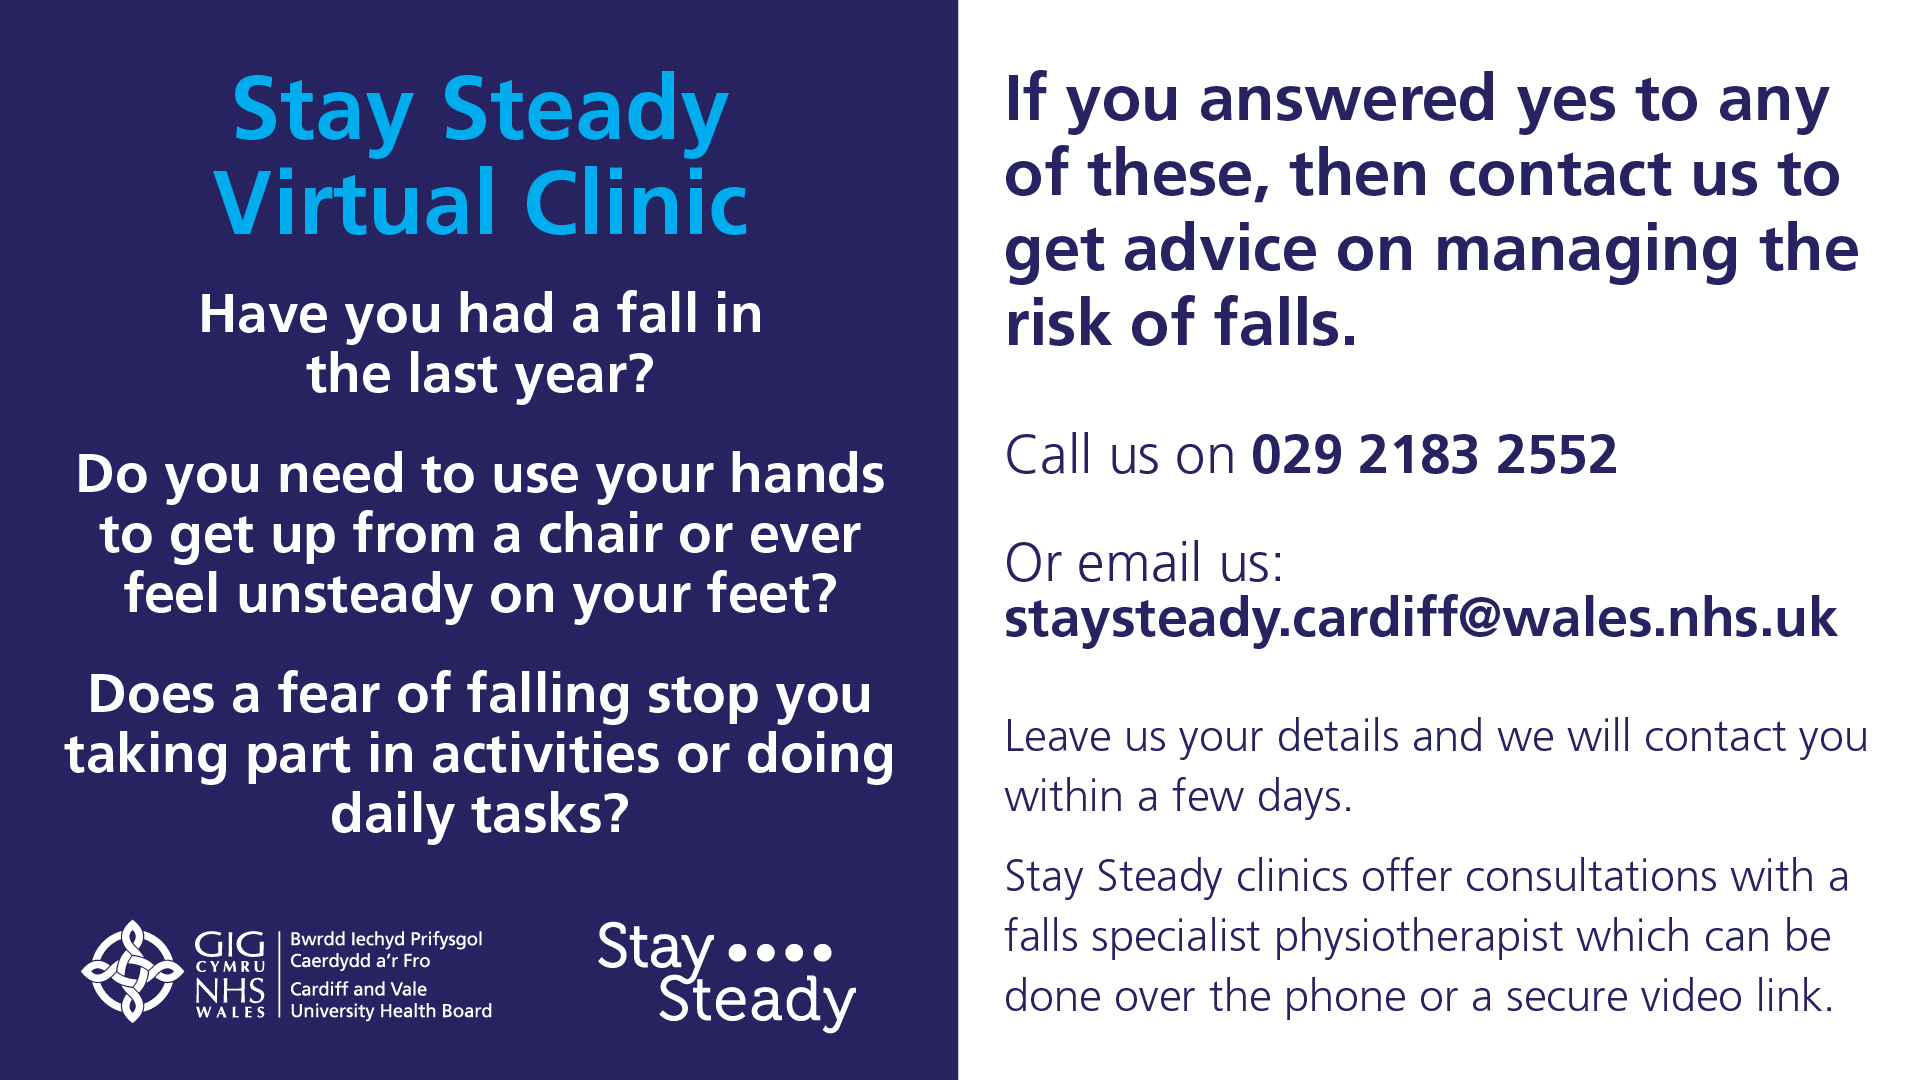 Stay Steady Virtual Clinic Have you had a fall in the last year? Do you need to use your hands to get up from a chair or ever feel unsteady on your feet? Does a fear of falling stop you from taking part in activities or doinf daily tasks? If you answered yes to any of these, then contact us to get advice on managing the risk of falls. Call us on 029 2183 2552. Or email us on staysteady.cardiff@wales.nhs.uk Leave us your details and we will contact you within a few days. Stay steady clinics offer consultations with a falls specialist physiotherapist which can be done over the phone or a secure video link.